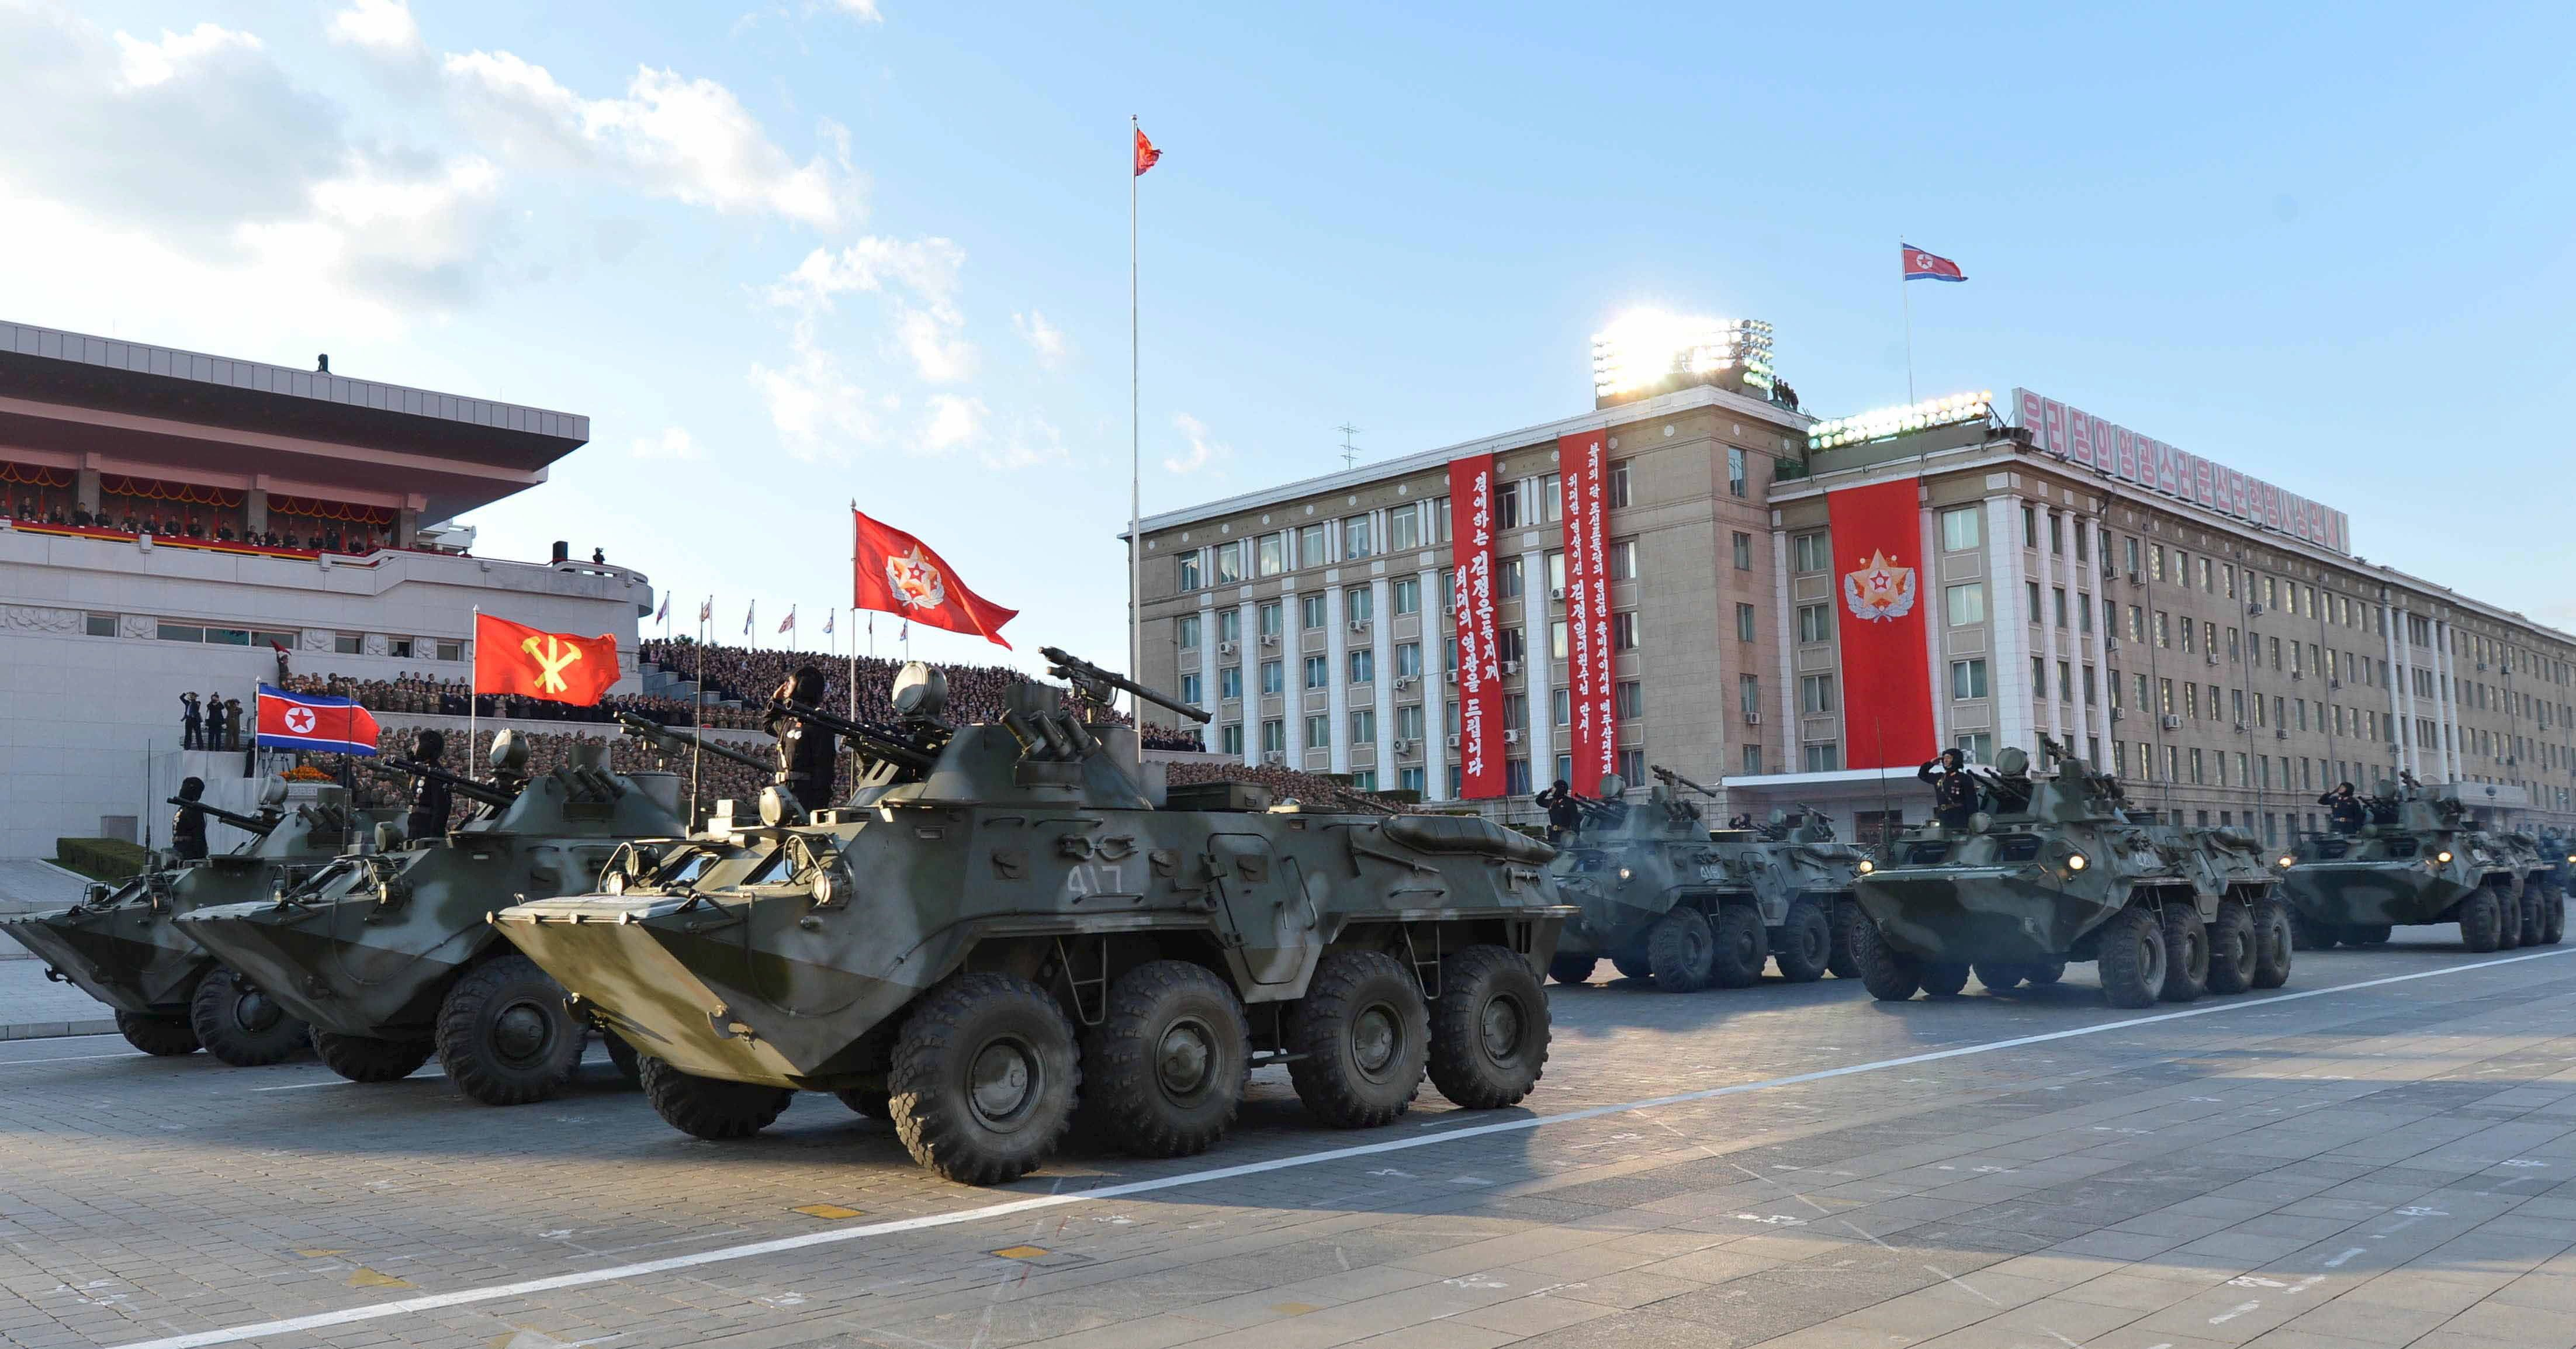 North Korean military participate in the celebration of the 70th anniversary of the founding of the ruling Workers' Party of Korea, in this undated photo released by North Korea's Korean Central News Agency (KCNA) in Pyongyang on October 12, 2015. Isolated North Korea marked the 70th anniversary of its ruling Workers' Party on Saturday with a massive military parade overseen by leader Kim Jong Un, who said his country was ready to fight any war waged by the United States. REUTERS/KCNA  ATTENTION EDITORS - THIS PICTURE WAS PROVIDED BY A THIRD PARTY. REUTERS IS UNABLE TO INDEPENDENTLY VERIFY THE AUTHENTICITY, CONTENT, LOCATION OR DATE OF THIS IMAGE. FOR EDITORIAL USE ONLY. NOT FOR SALE FOR MARKETING OR ADVERTISING CAMPAIGNS. NO THIRD PARTY SALES. THIS PICTURE IS DISTRIBUTED EXACTLY AS RECEIVED BY REUTERS, AS A SERVICE TO CLIENTS. SOUTH KOREA OUT. NO COMMERCIAL OR EDITORIAL SALES IN SOUTH KOREA.